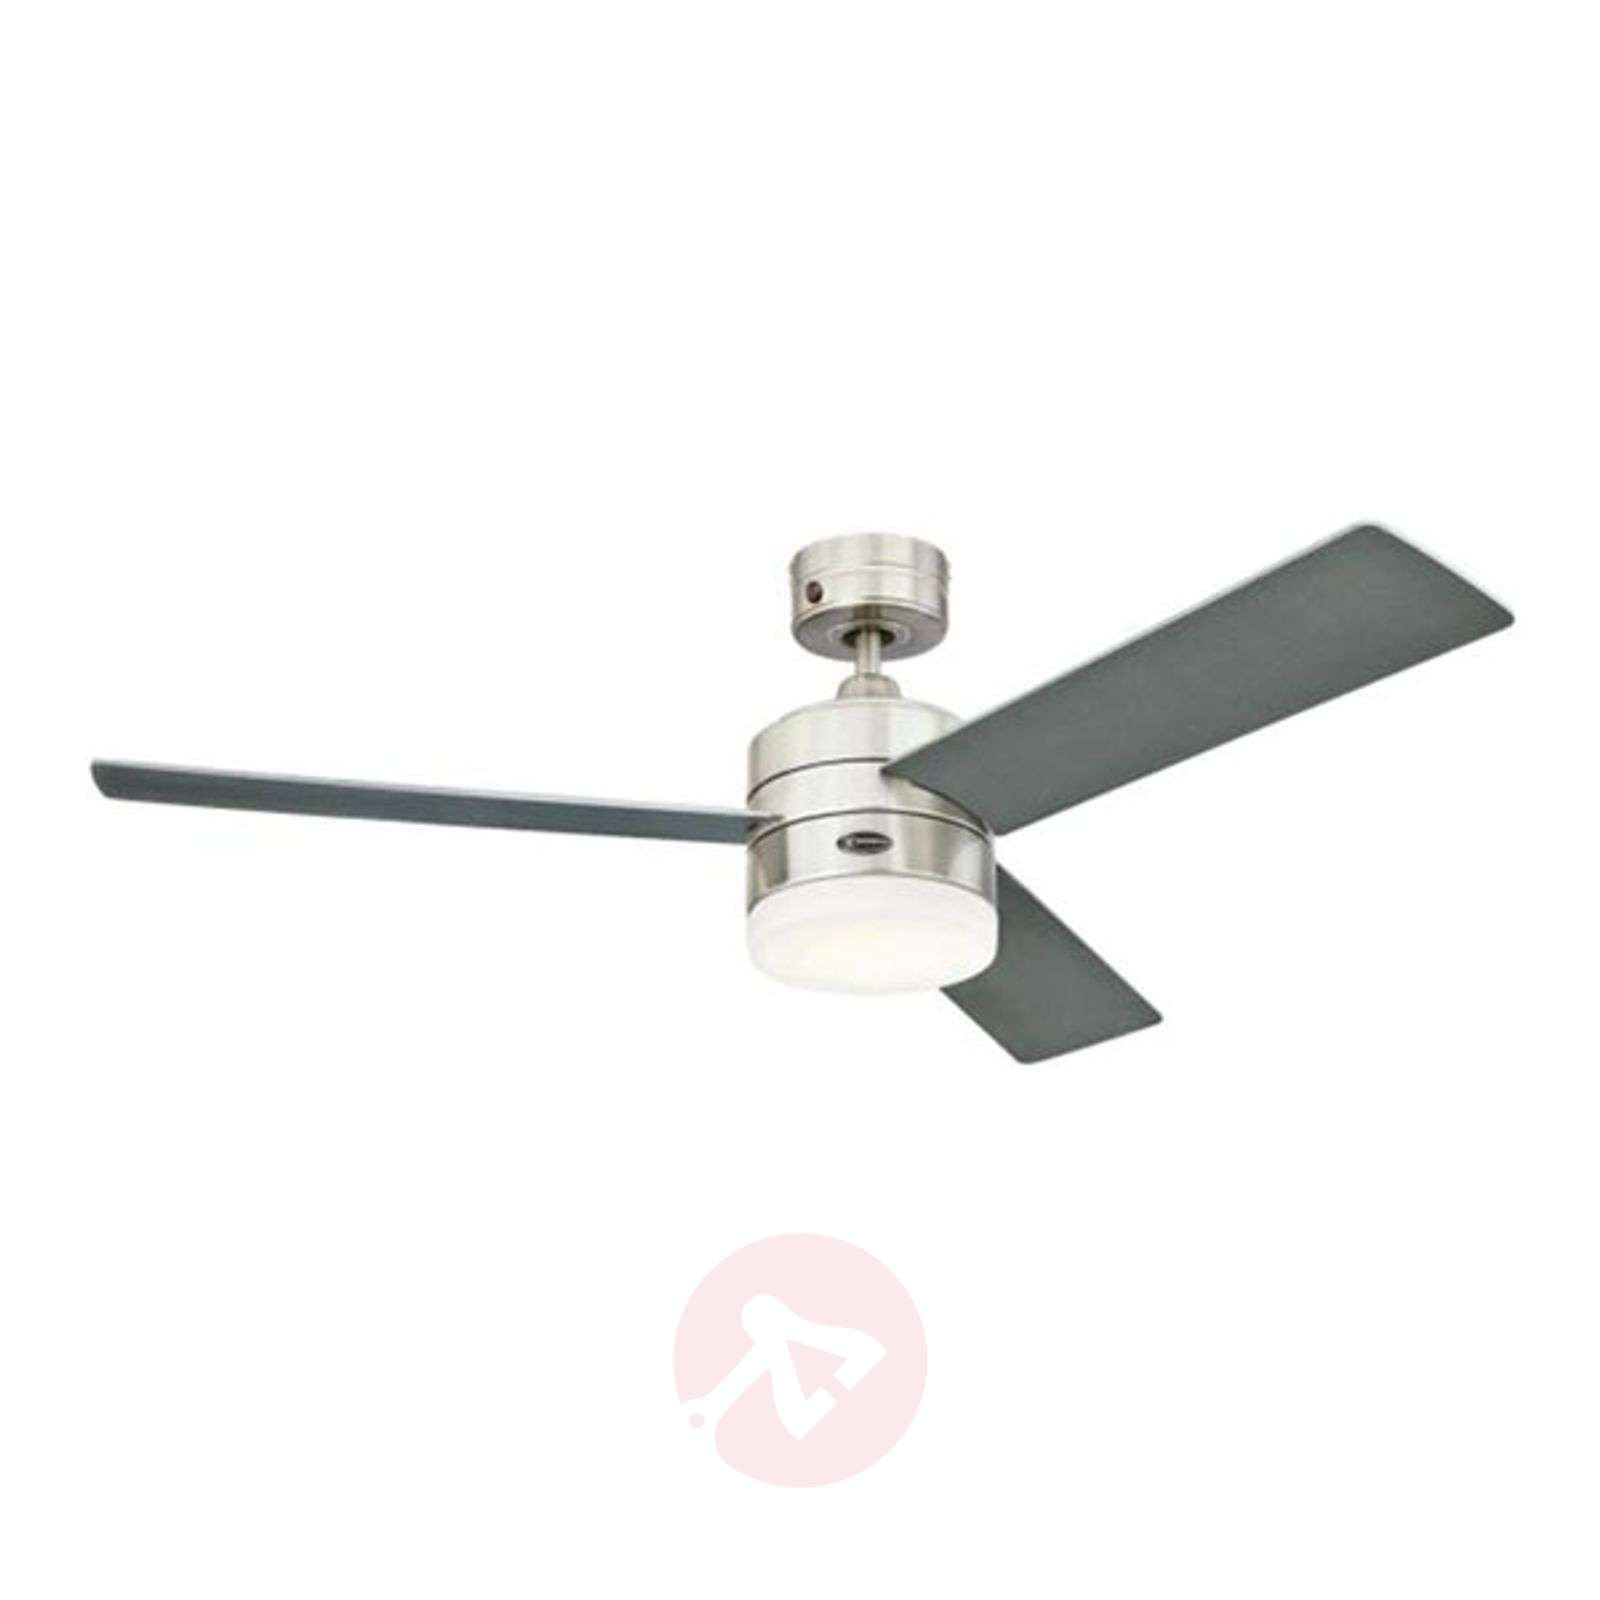 Modern Ceiling Fans With Lights: Modern Ceiling Fan Alta Vista LED